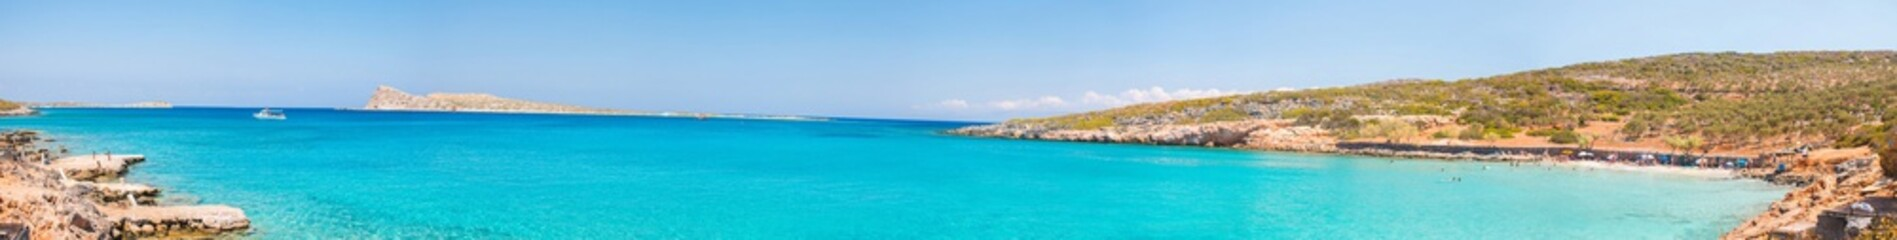 Beautiful bay with turquoise water. A popular tourist beach. Kolokitha beach. Peninsula Kalydon. Crete, Elounda,Greece.Panoramic view HD.